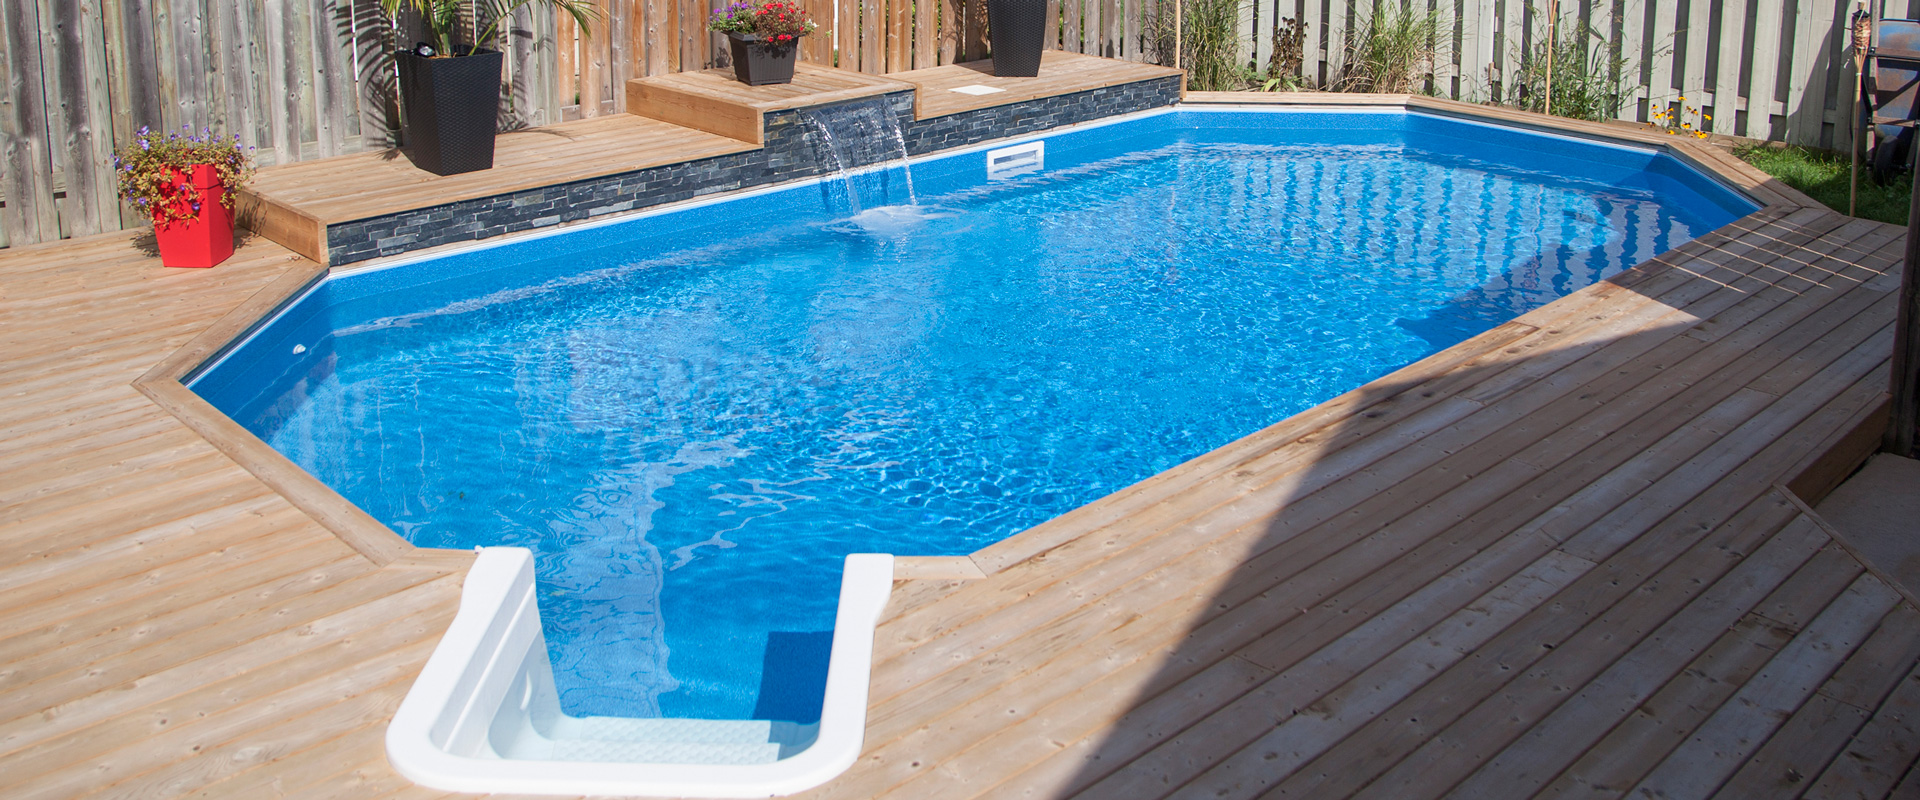 Onground pools customer galleries pioneer family pools for Pool showcase